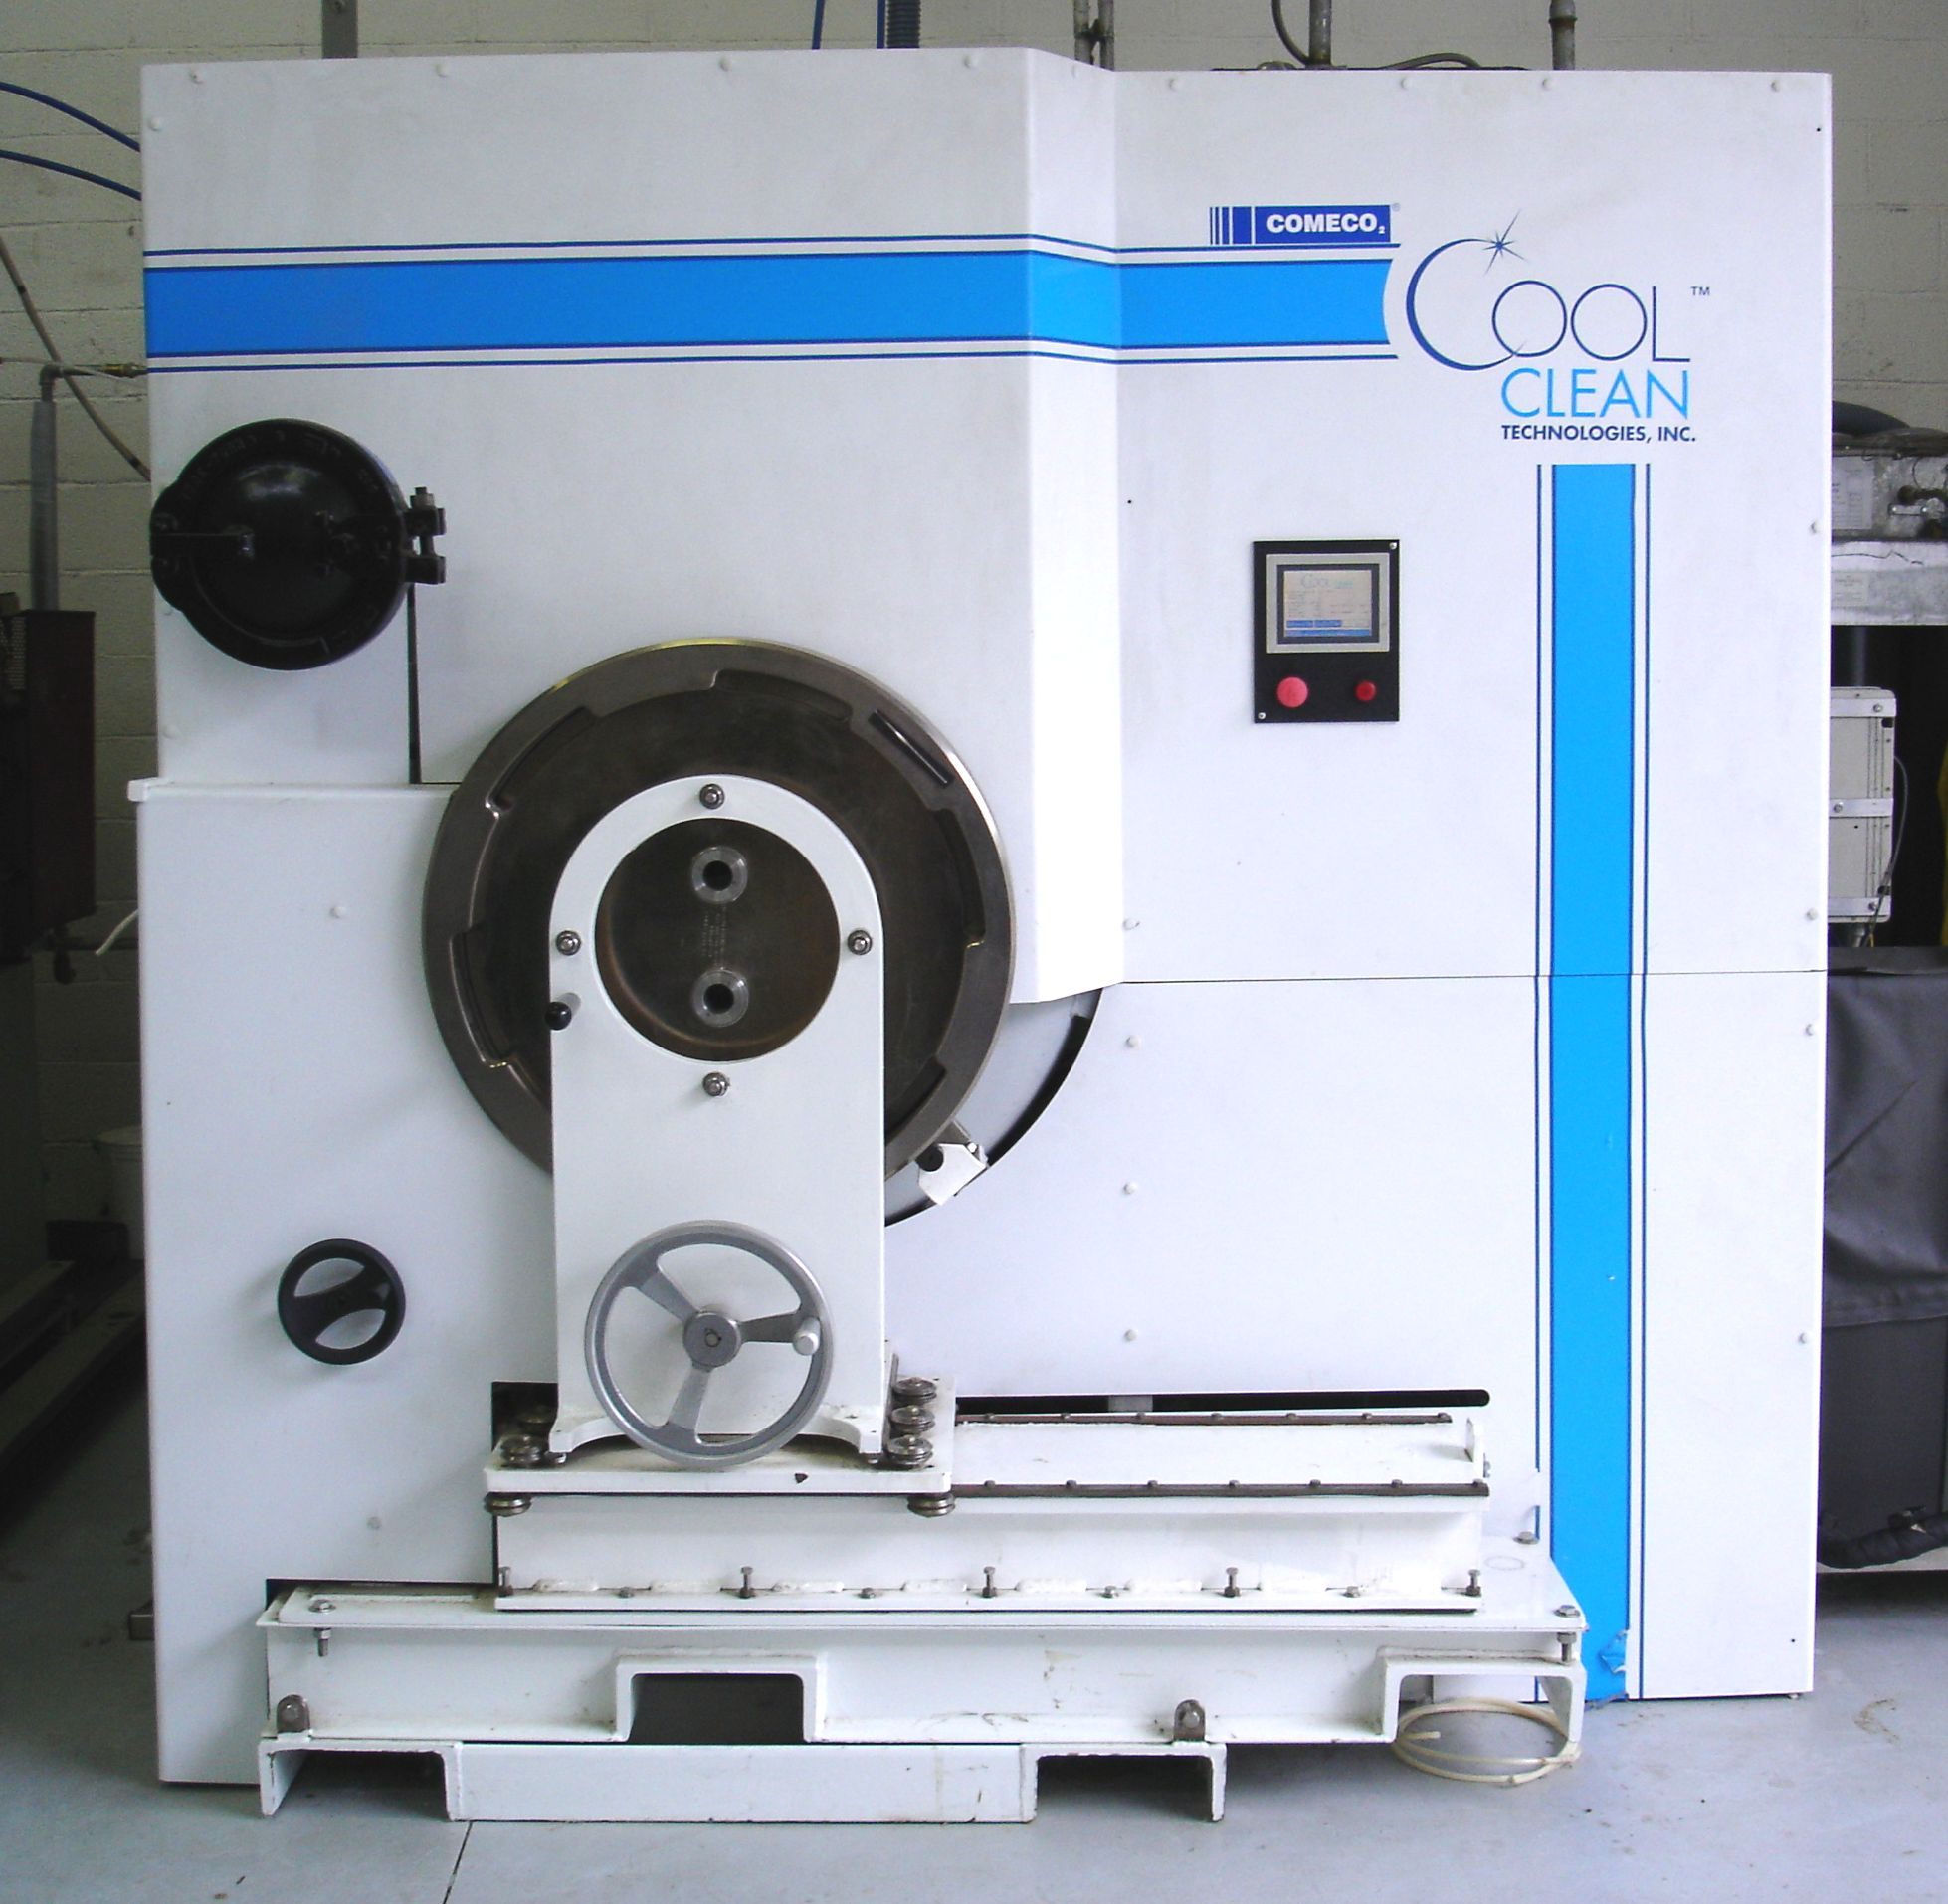 Dry Cleaning Machine Using Liquid CO2